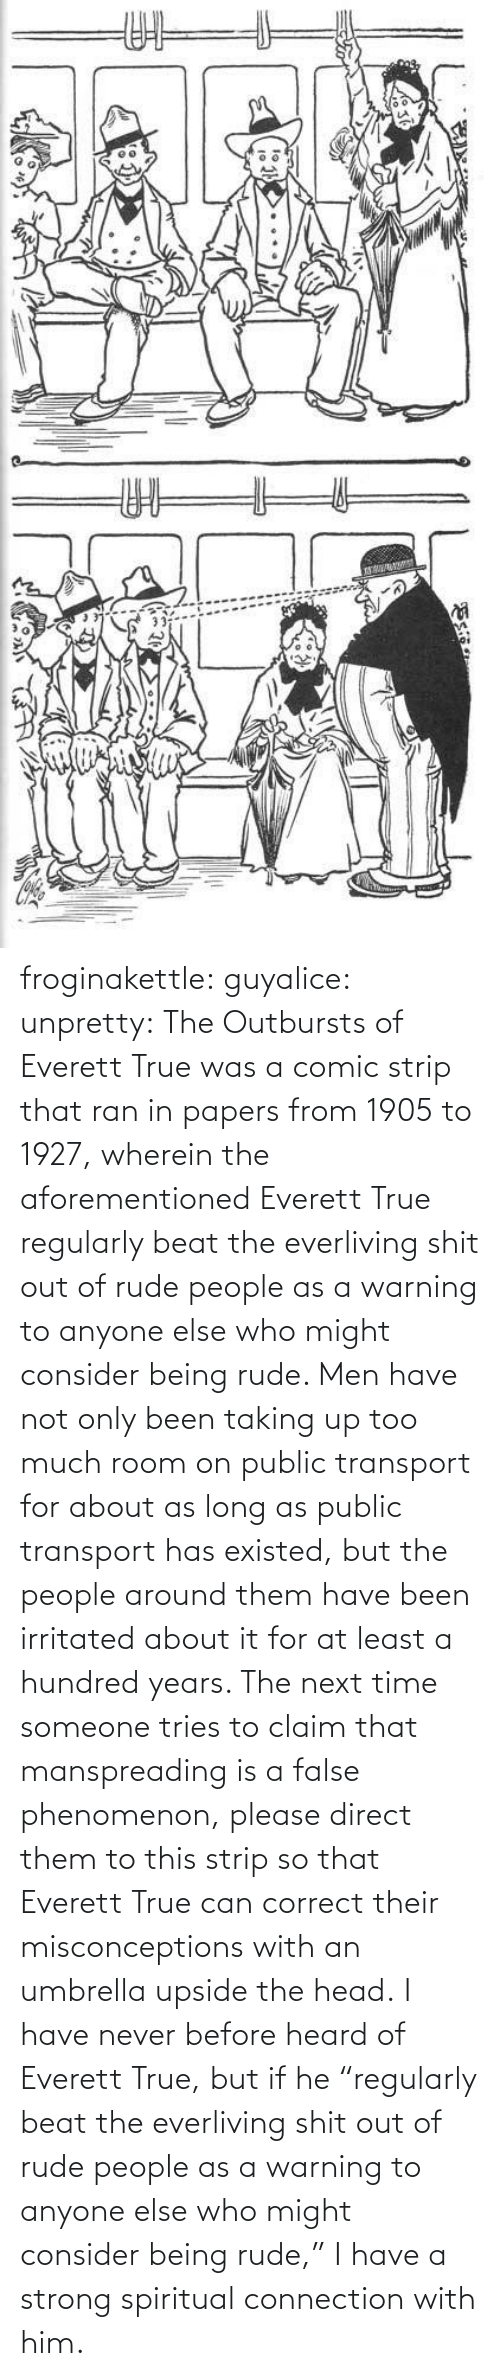 "Hundred: ఇ  క froginakettle:  guyalice:  unpretty:  The Outbursts of Everett True was a comic strip that ran in papers from 1905 to 1927, wherein the aforementioned Everett True regularly beat the everliving shit out of rude people as a warning to anyone else who might consider being rude. Men have not only been taking up too much room on public transport for about as long as public transport has existed, but the people around them have been irritated about it for at least a hundred years. The next time someone tries to claim that manspreading is a false phenomenon, please direct them to this strip so that Everett True can correct their misconceptions with an umbrella upside the head.  I have never before heard of Everett True, but if he ""regularly beat the everliving shit out of rude people as a warning to anyone else who might consider being rude,"" I have a strong spiritual connection with him."